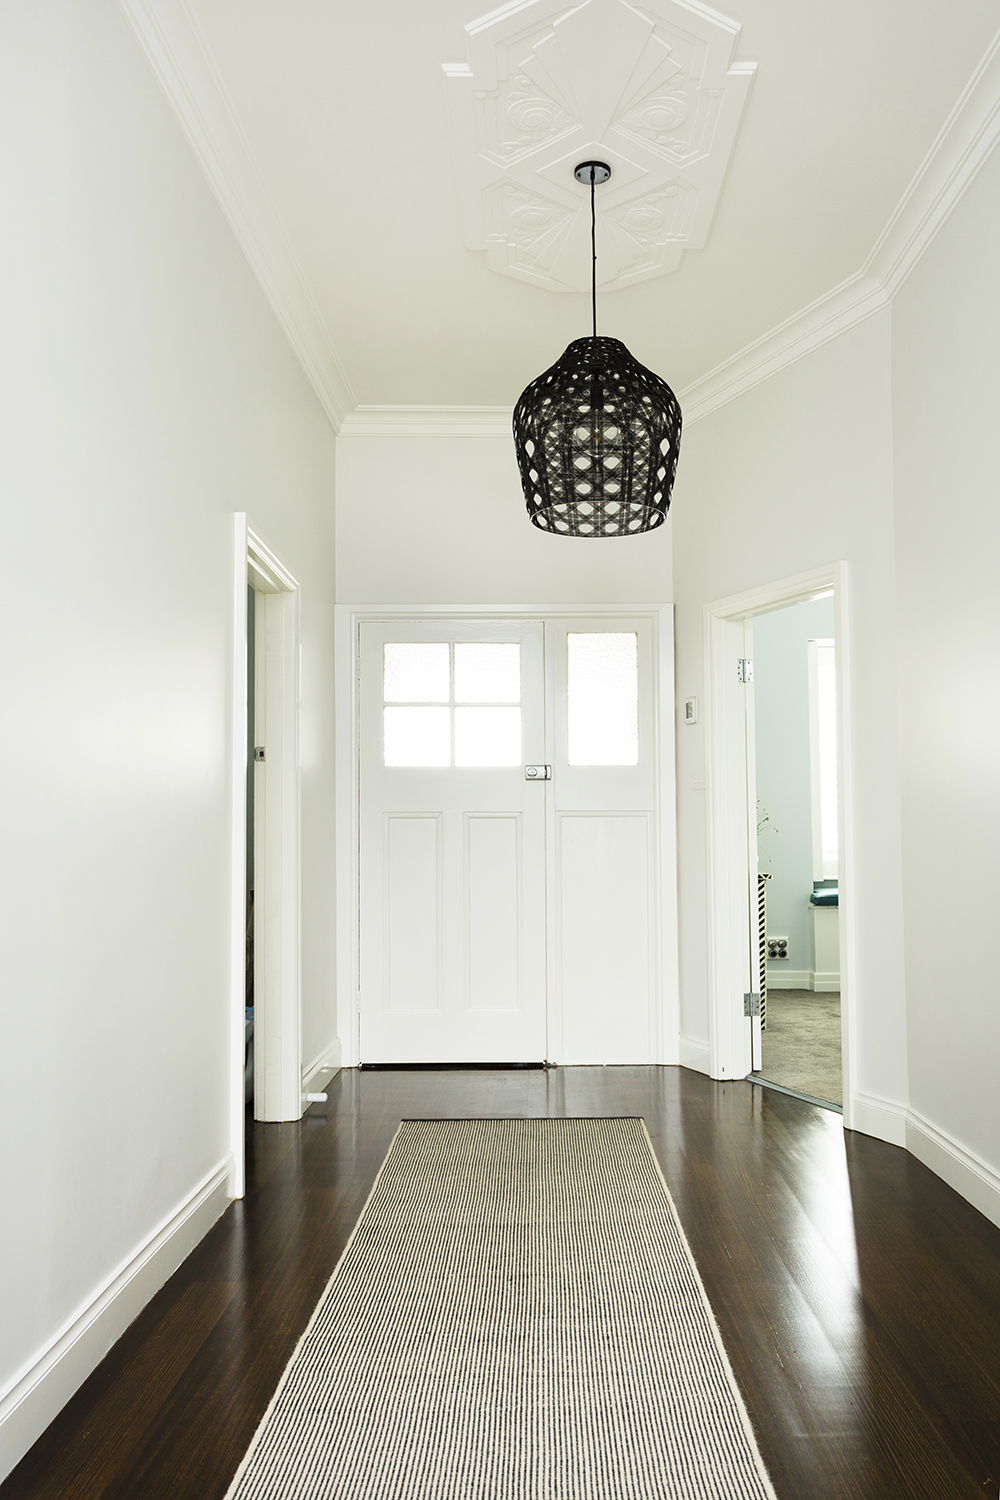 hallway design ideas, interior designer melbourne